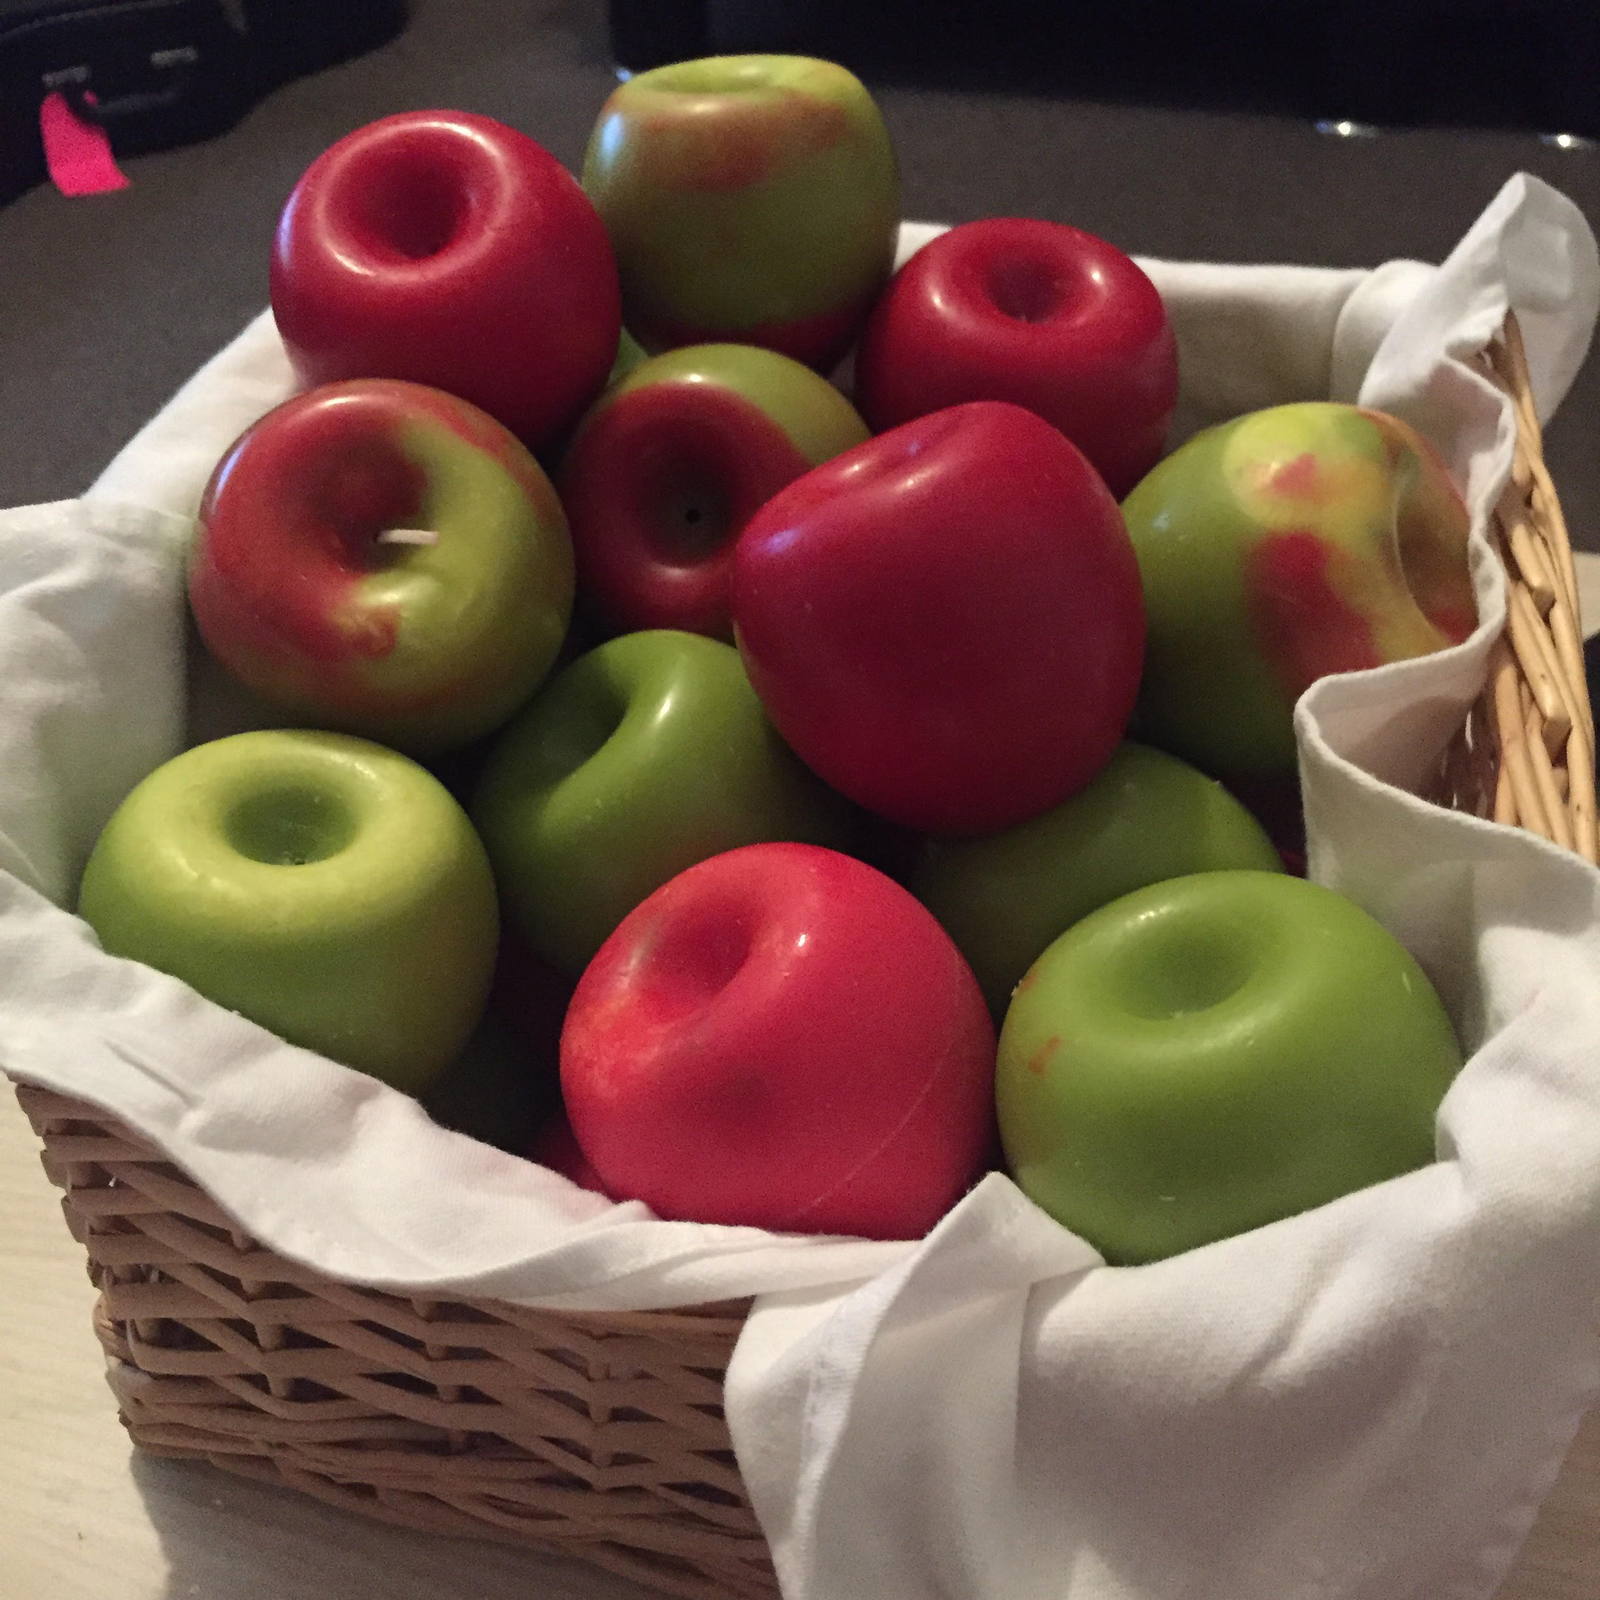 Apples Candles